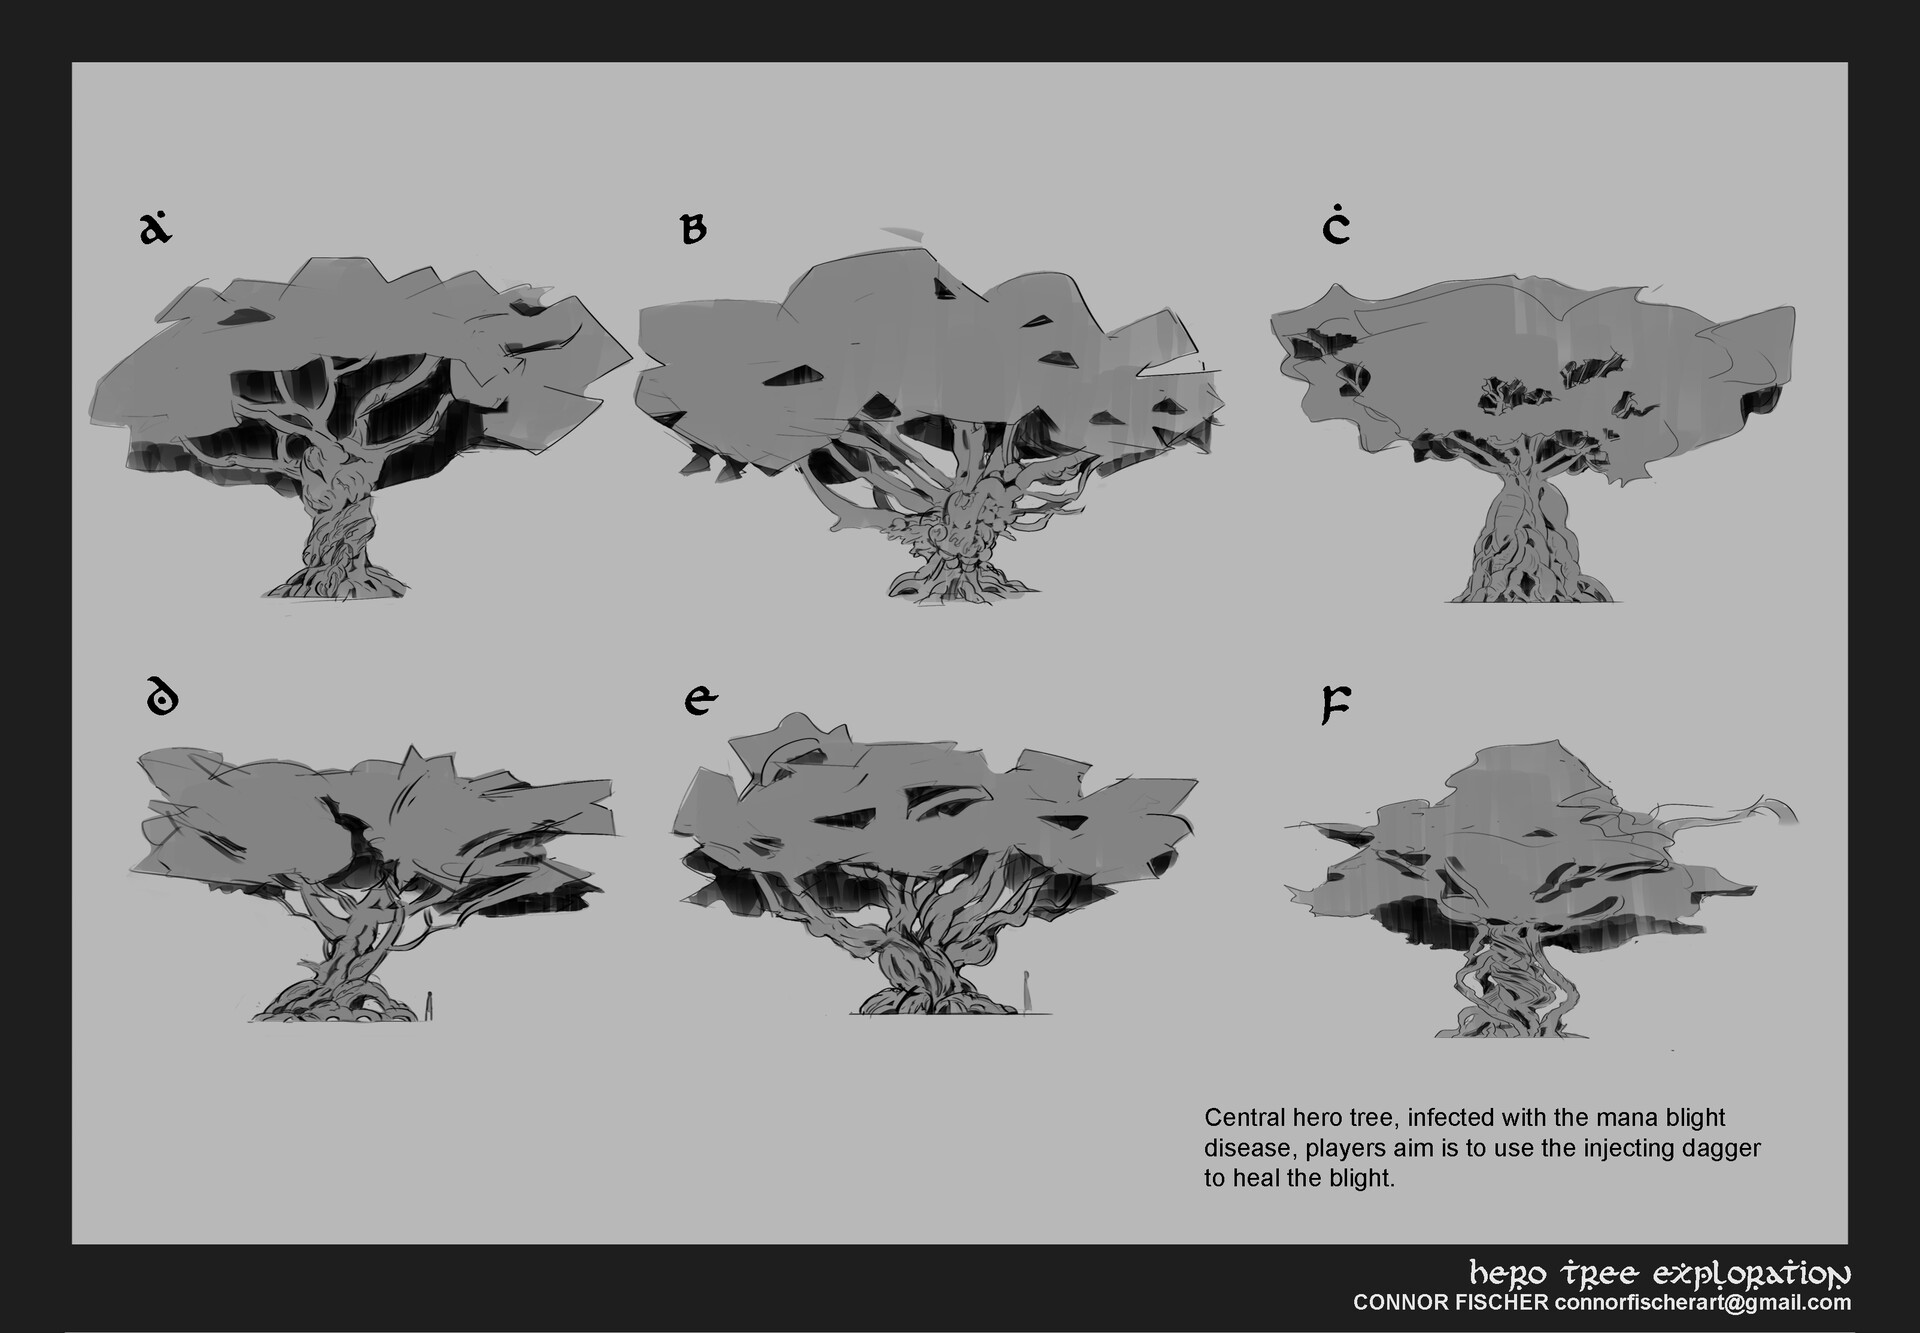 Sketches to figure out the direction and feel for the tree, I ended up liking B C and F.